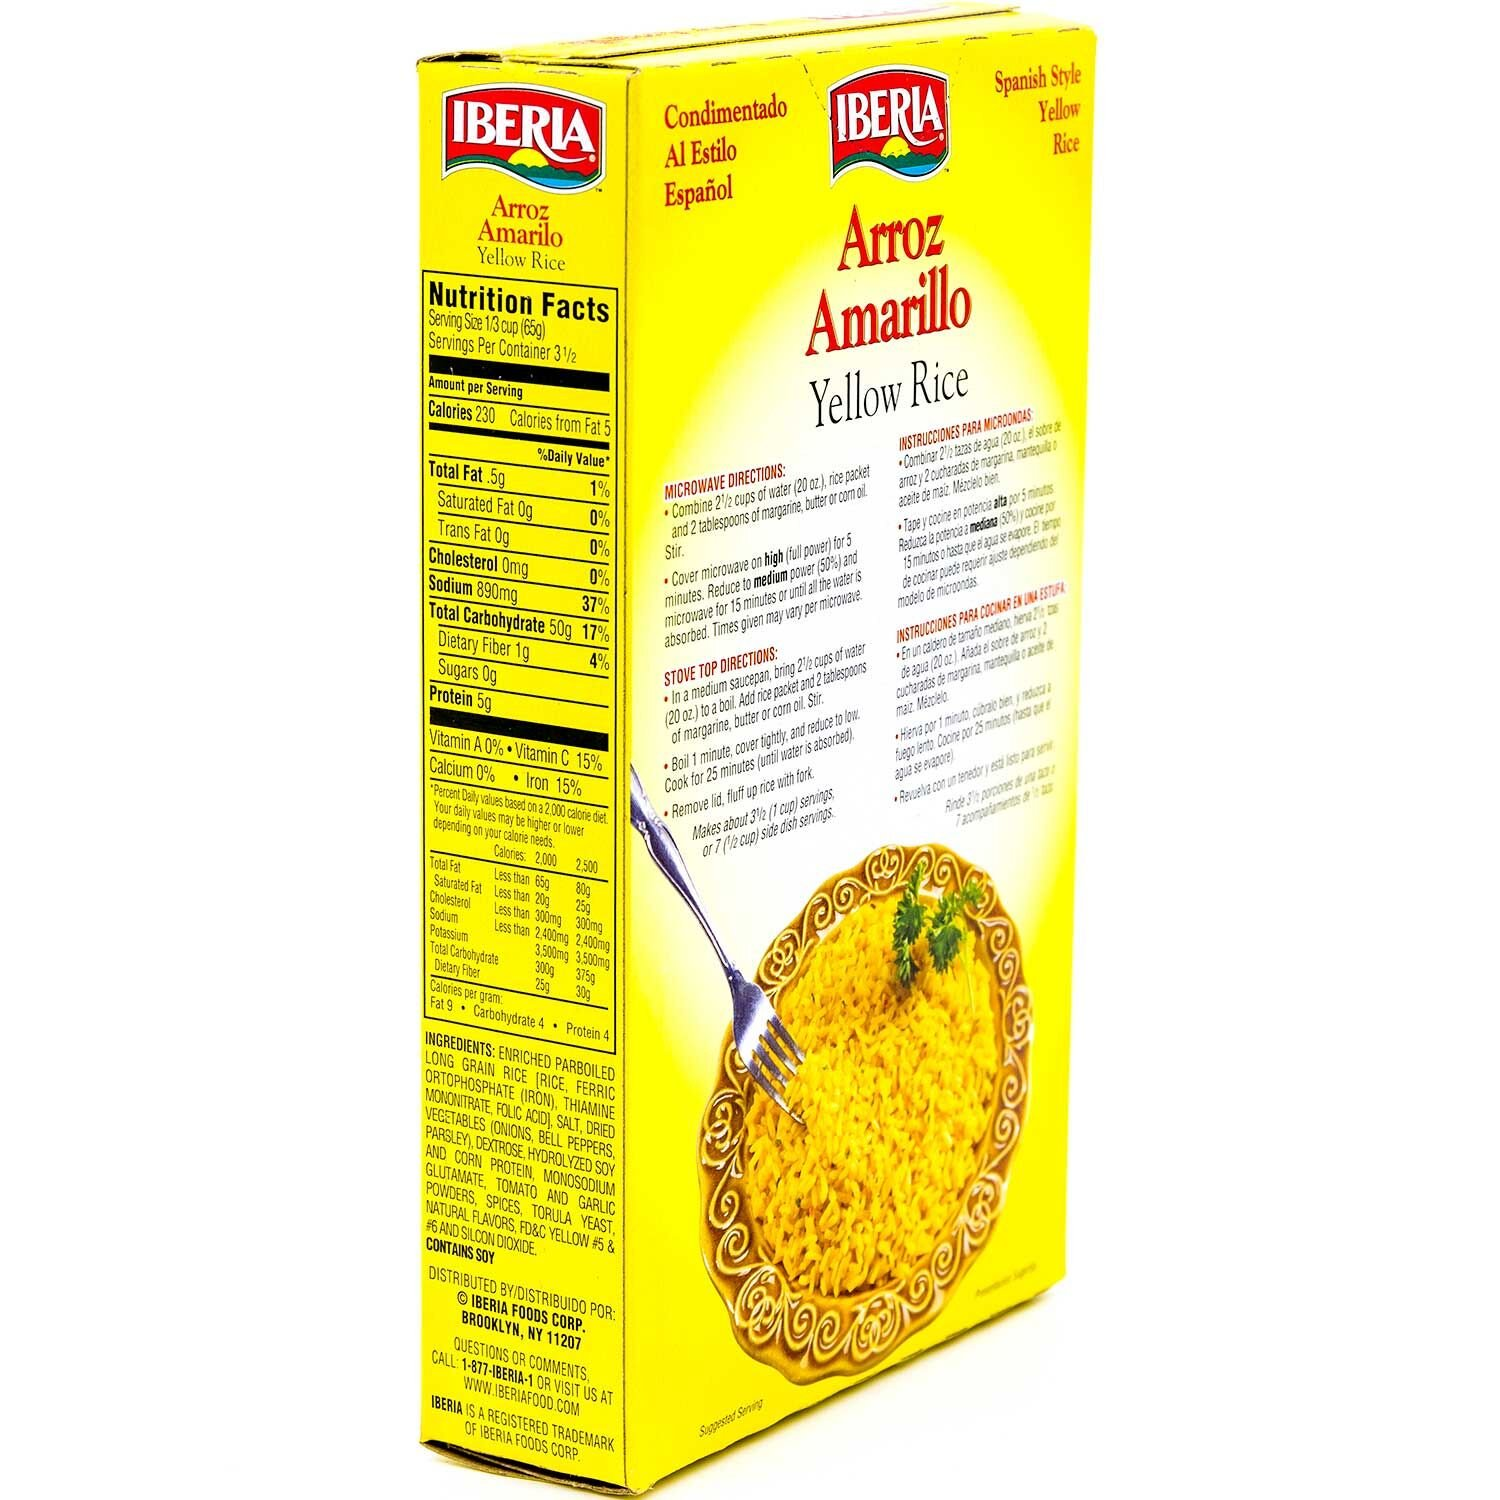 Amazon.com : Iberia Yellow Rice 8 oz, Spanish Style Seasoned Yellow Rice, Enriched Parboiled Long Grain Seasoned Rice, Microwaveable, Kosher (Pack of 12) ...